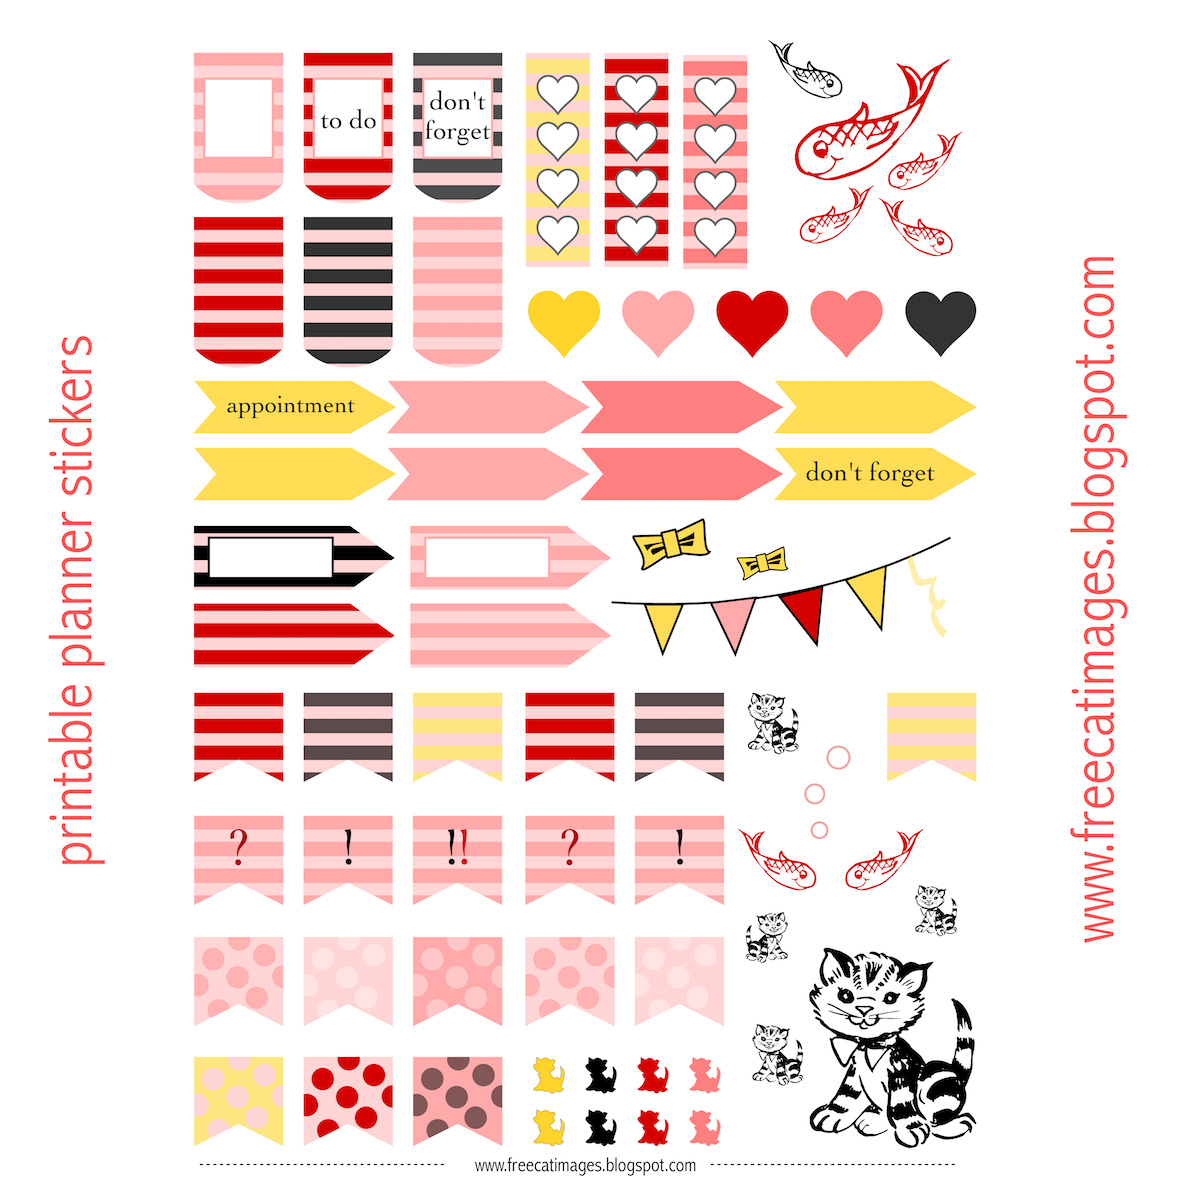 Printable Planner Stickers Student Free Cat Images Free Printable Planner Stickers Cats